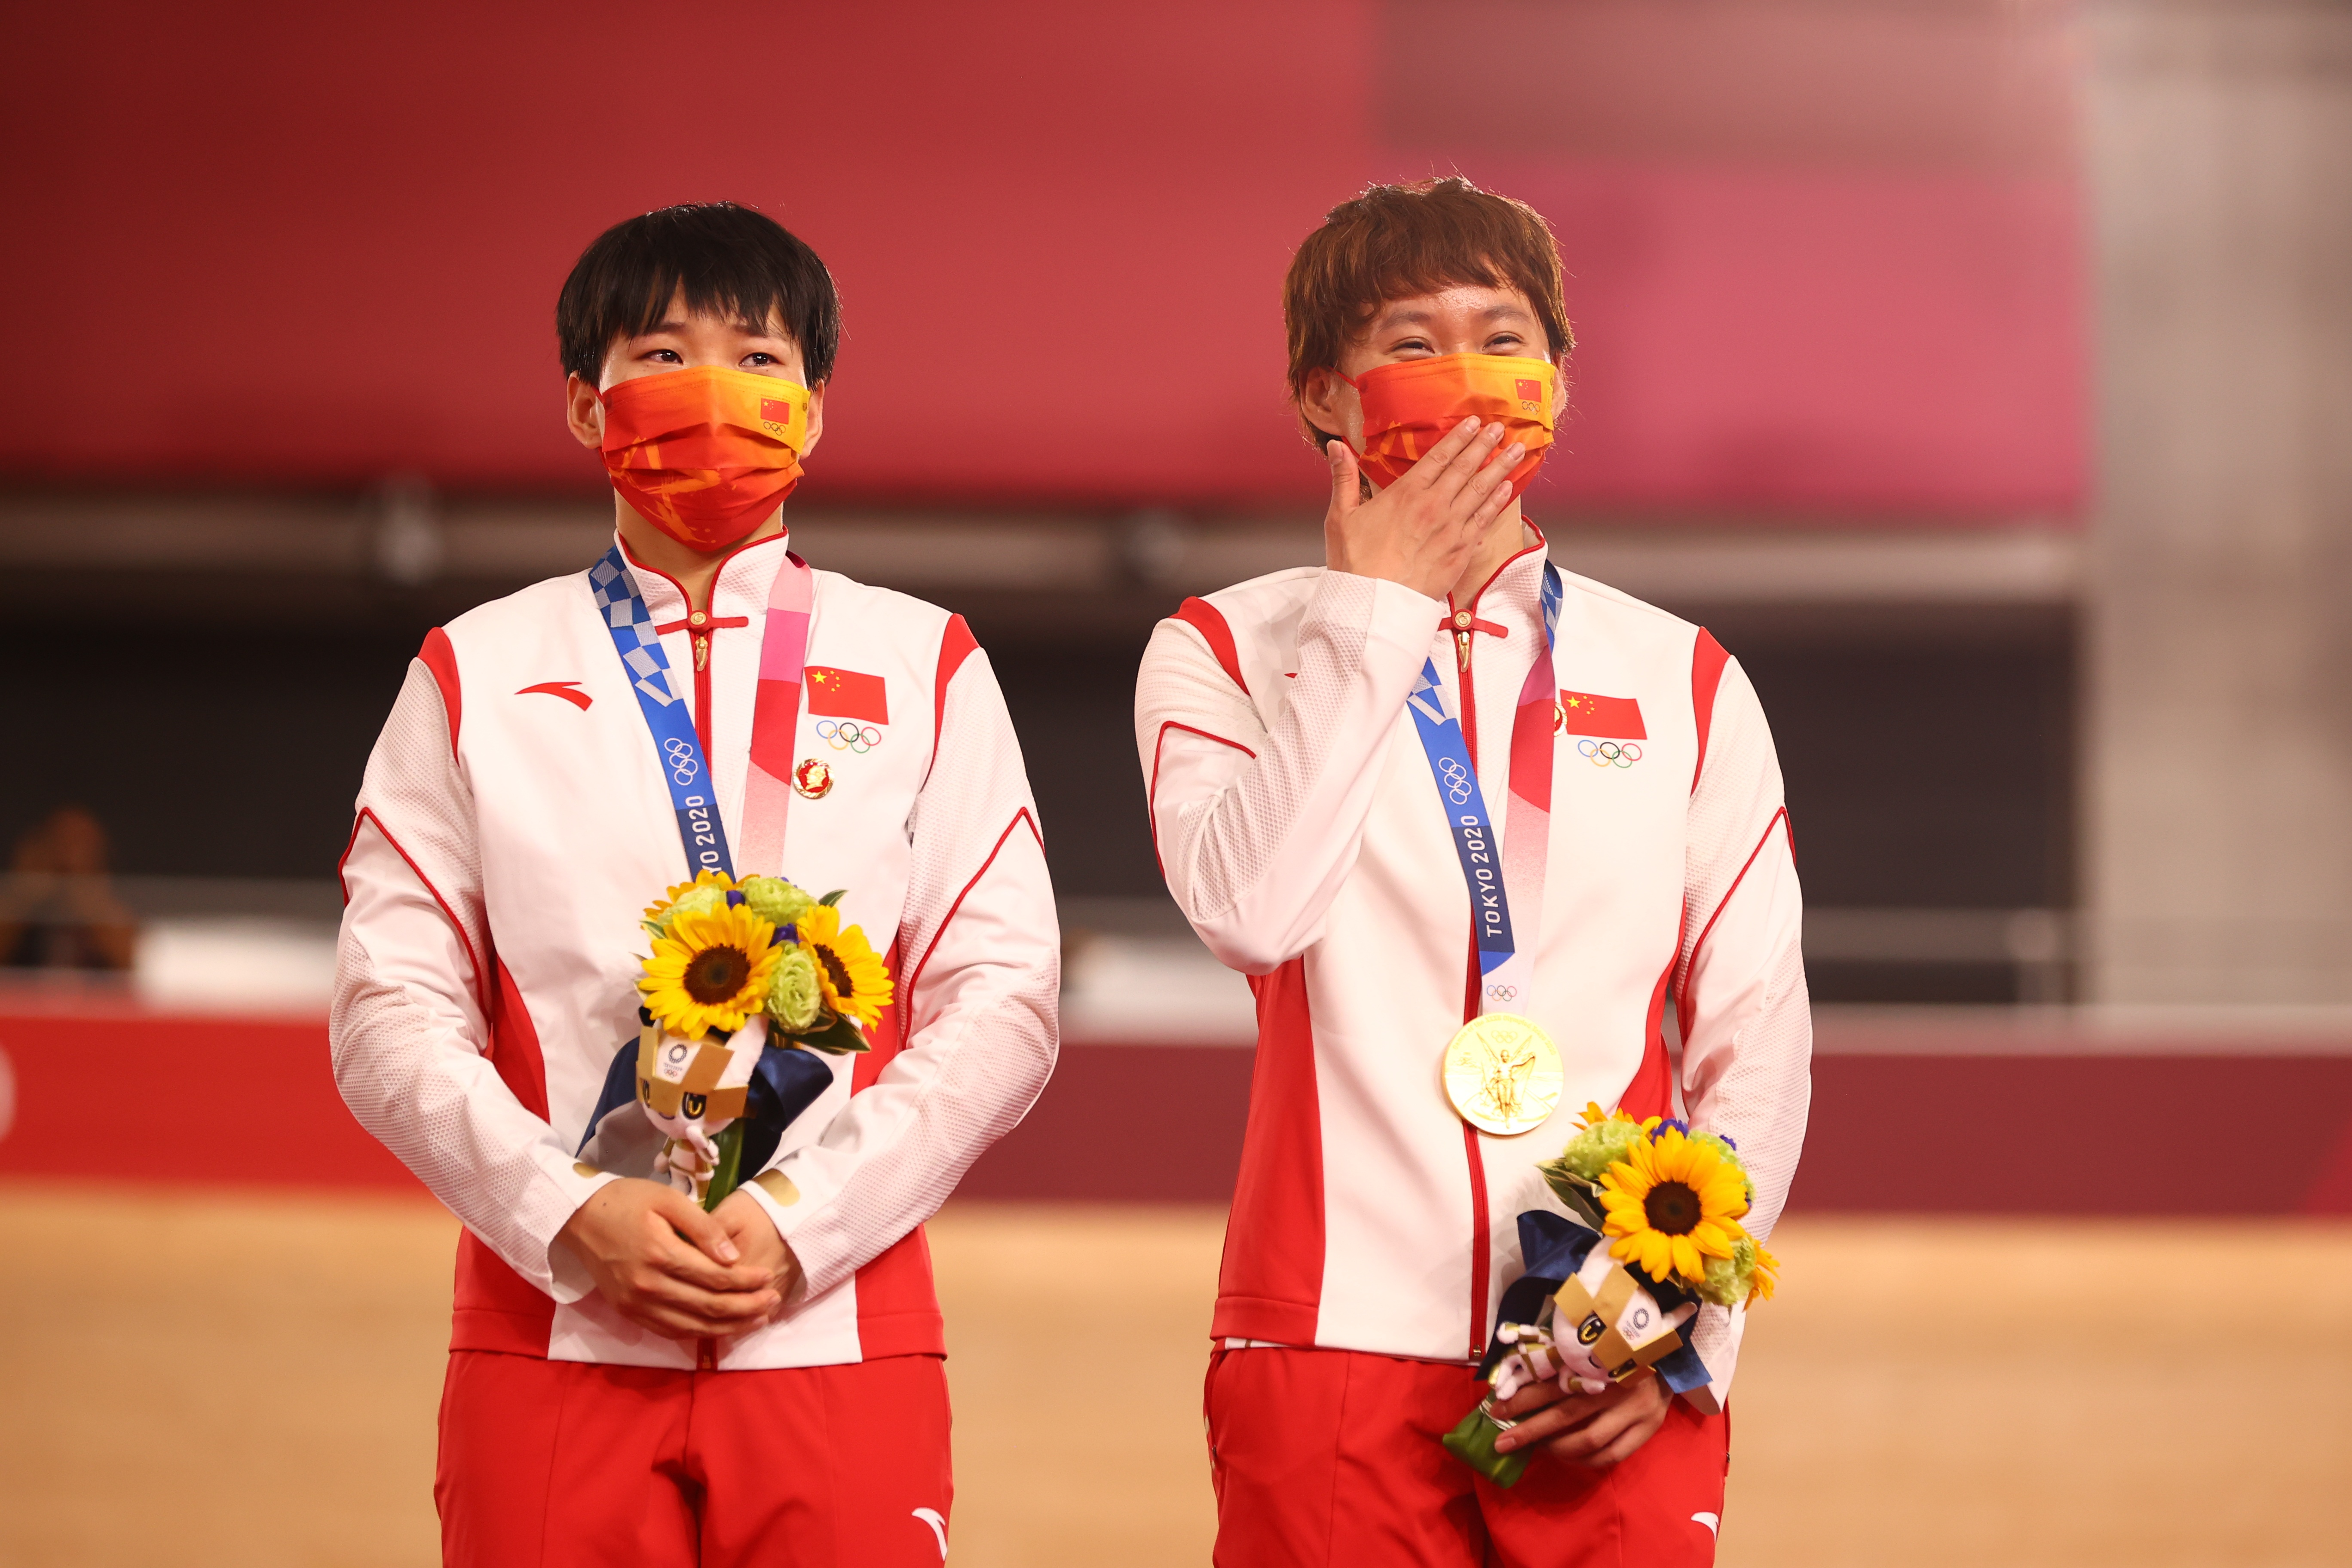 Tokyo 2020 Olympics - Cycling - Track - Women's Team Sprint - Medal Ceremony - Izu Velodrome, Shizuoka, Japan - August 2, 2021.  Gold medallists Bao Shanju of China and Zhong Tianshi of China wearing protective face masks pose with badges of the late Chinese chairman Mao Zedong pinned to their tracksuits REUTERS/Matthew Childs